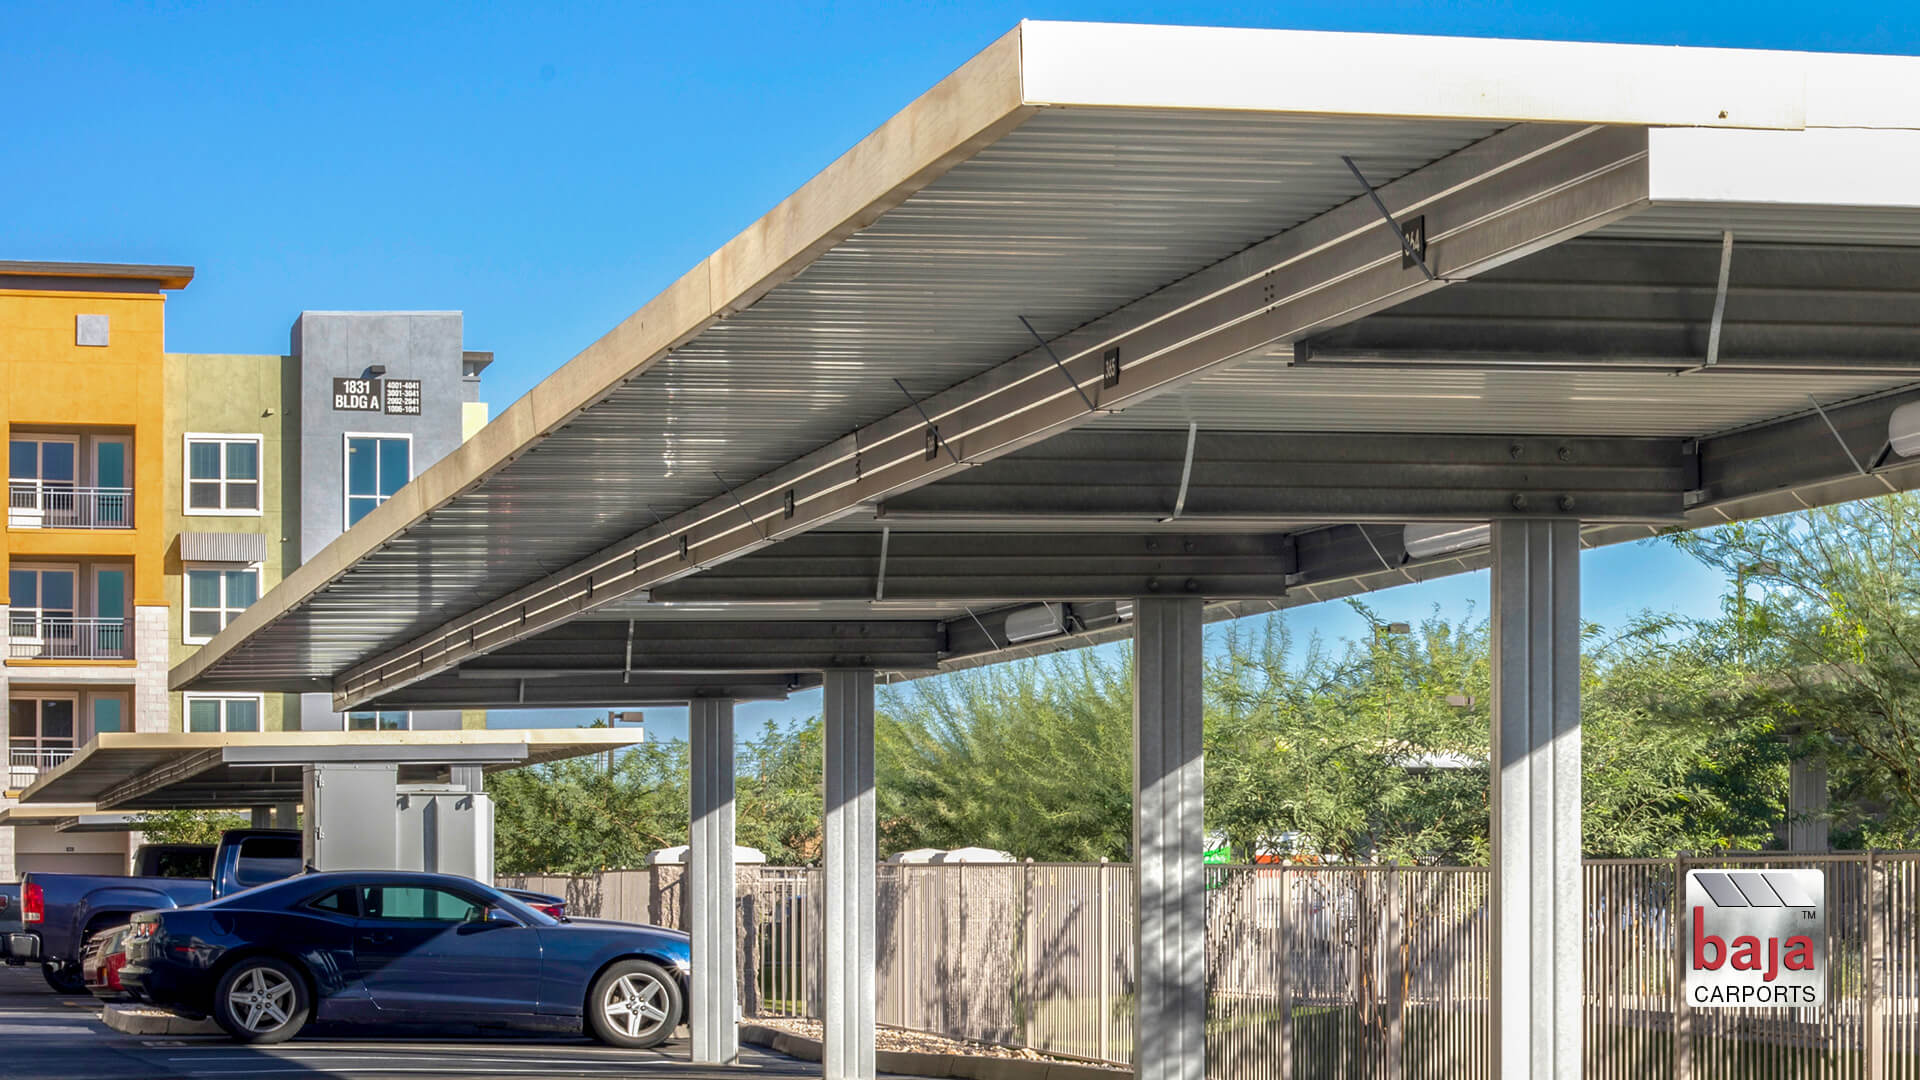 shade canopies at mcclintock in tempe arizona increases tenant retention